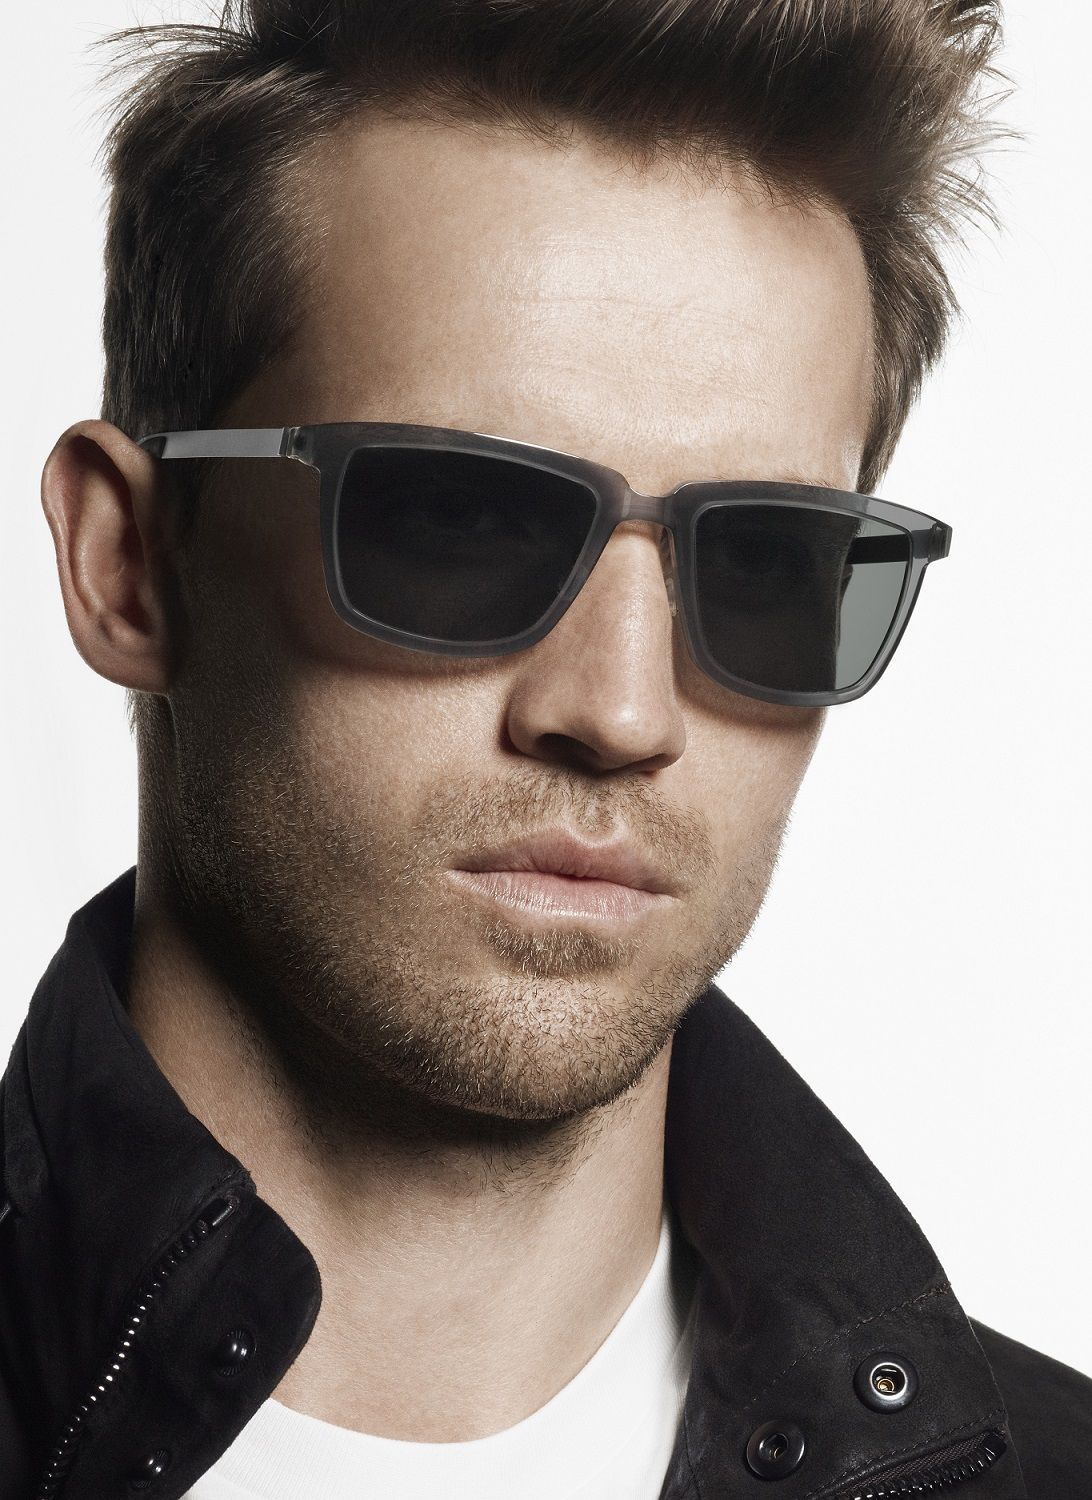 Lindberg Sunglasses.   Accessories  Sunglasses   Pinterest ... 2636f3daeb5b